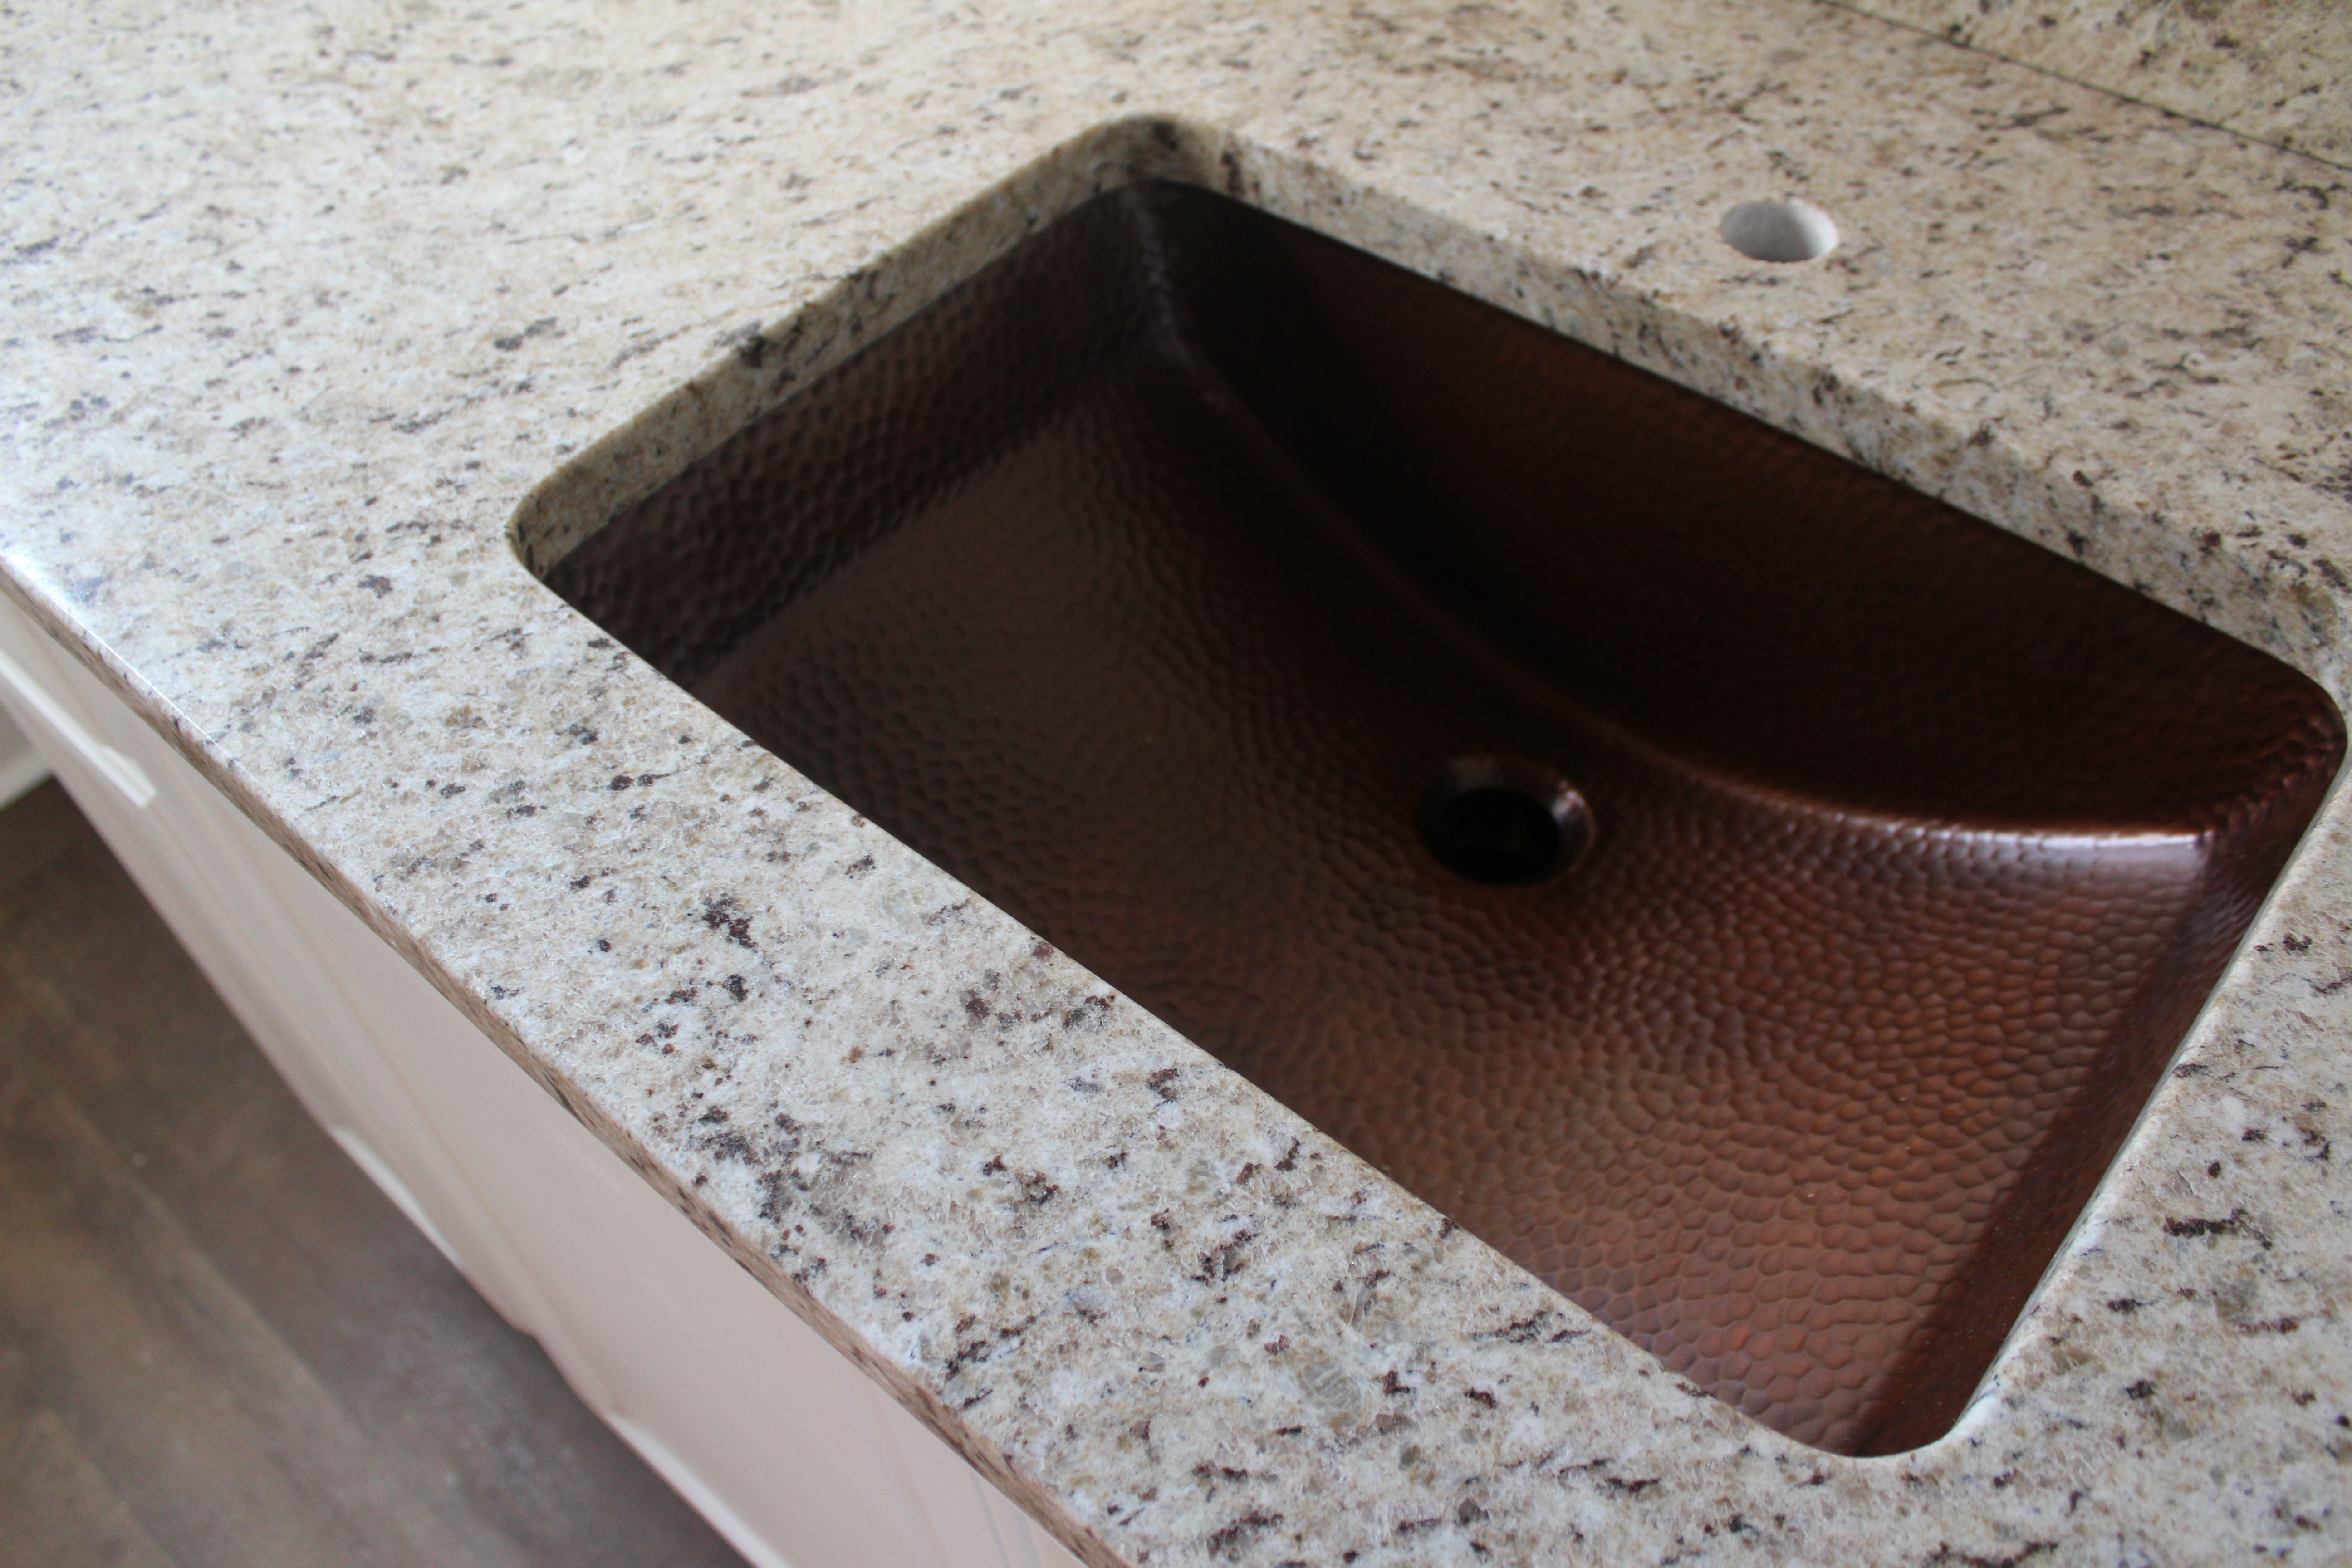 Upstairs Bathroom Countertops And A Copper Sink Life On